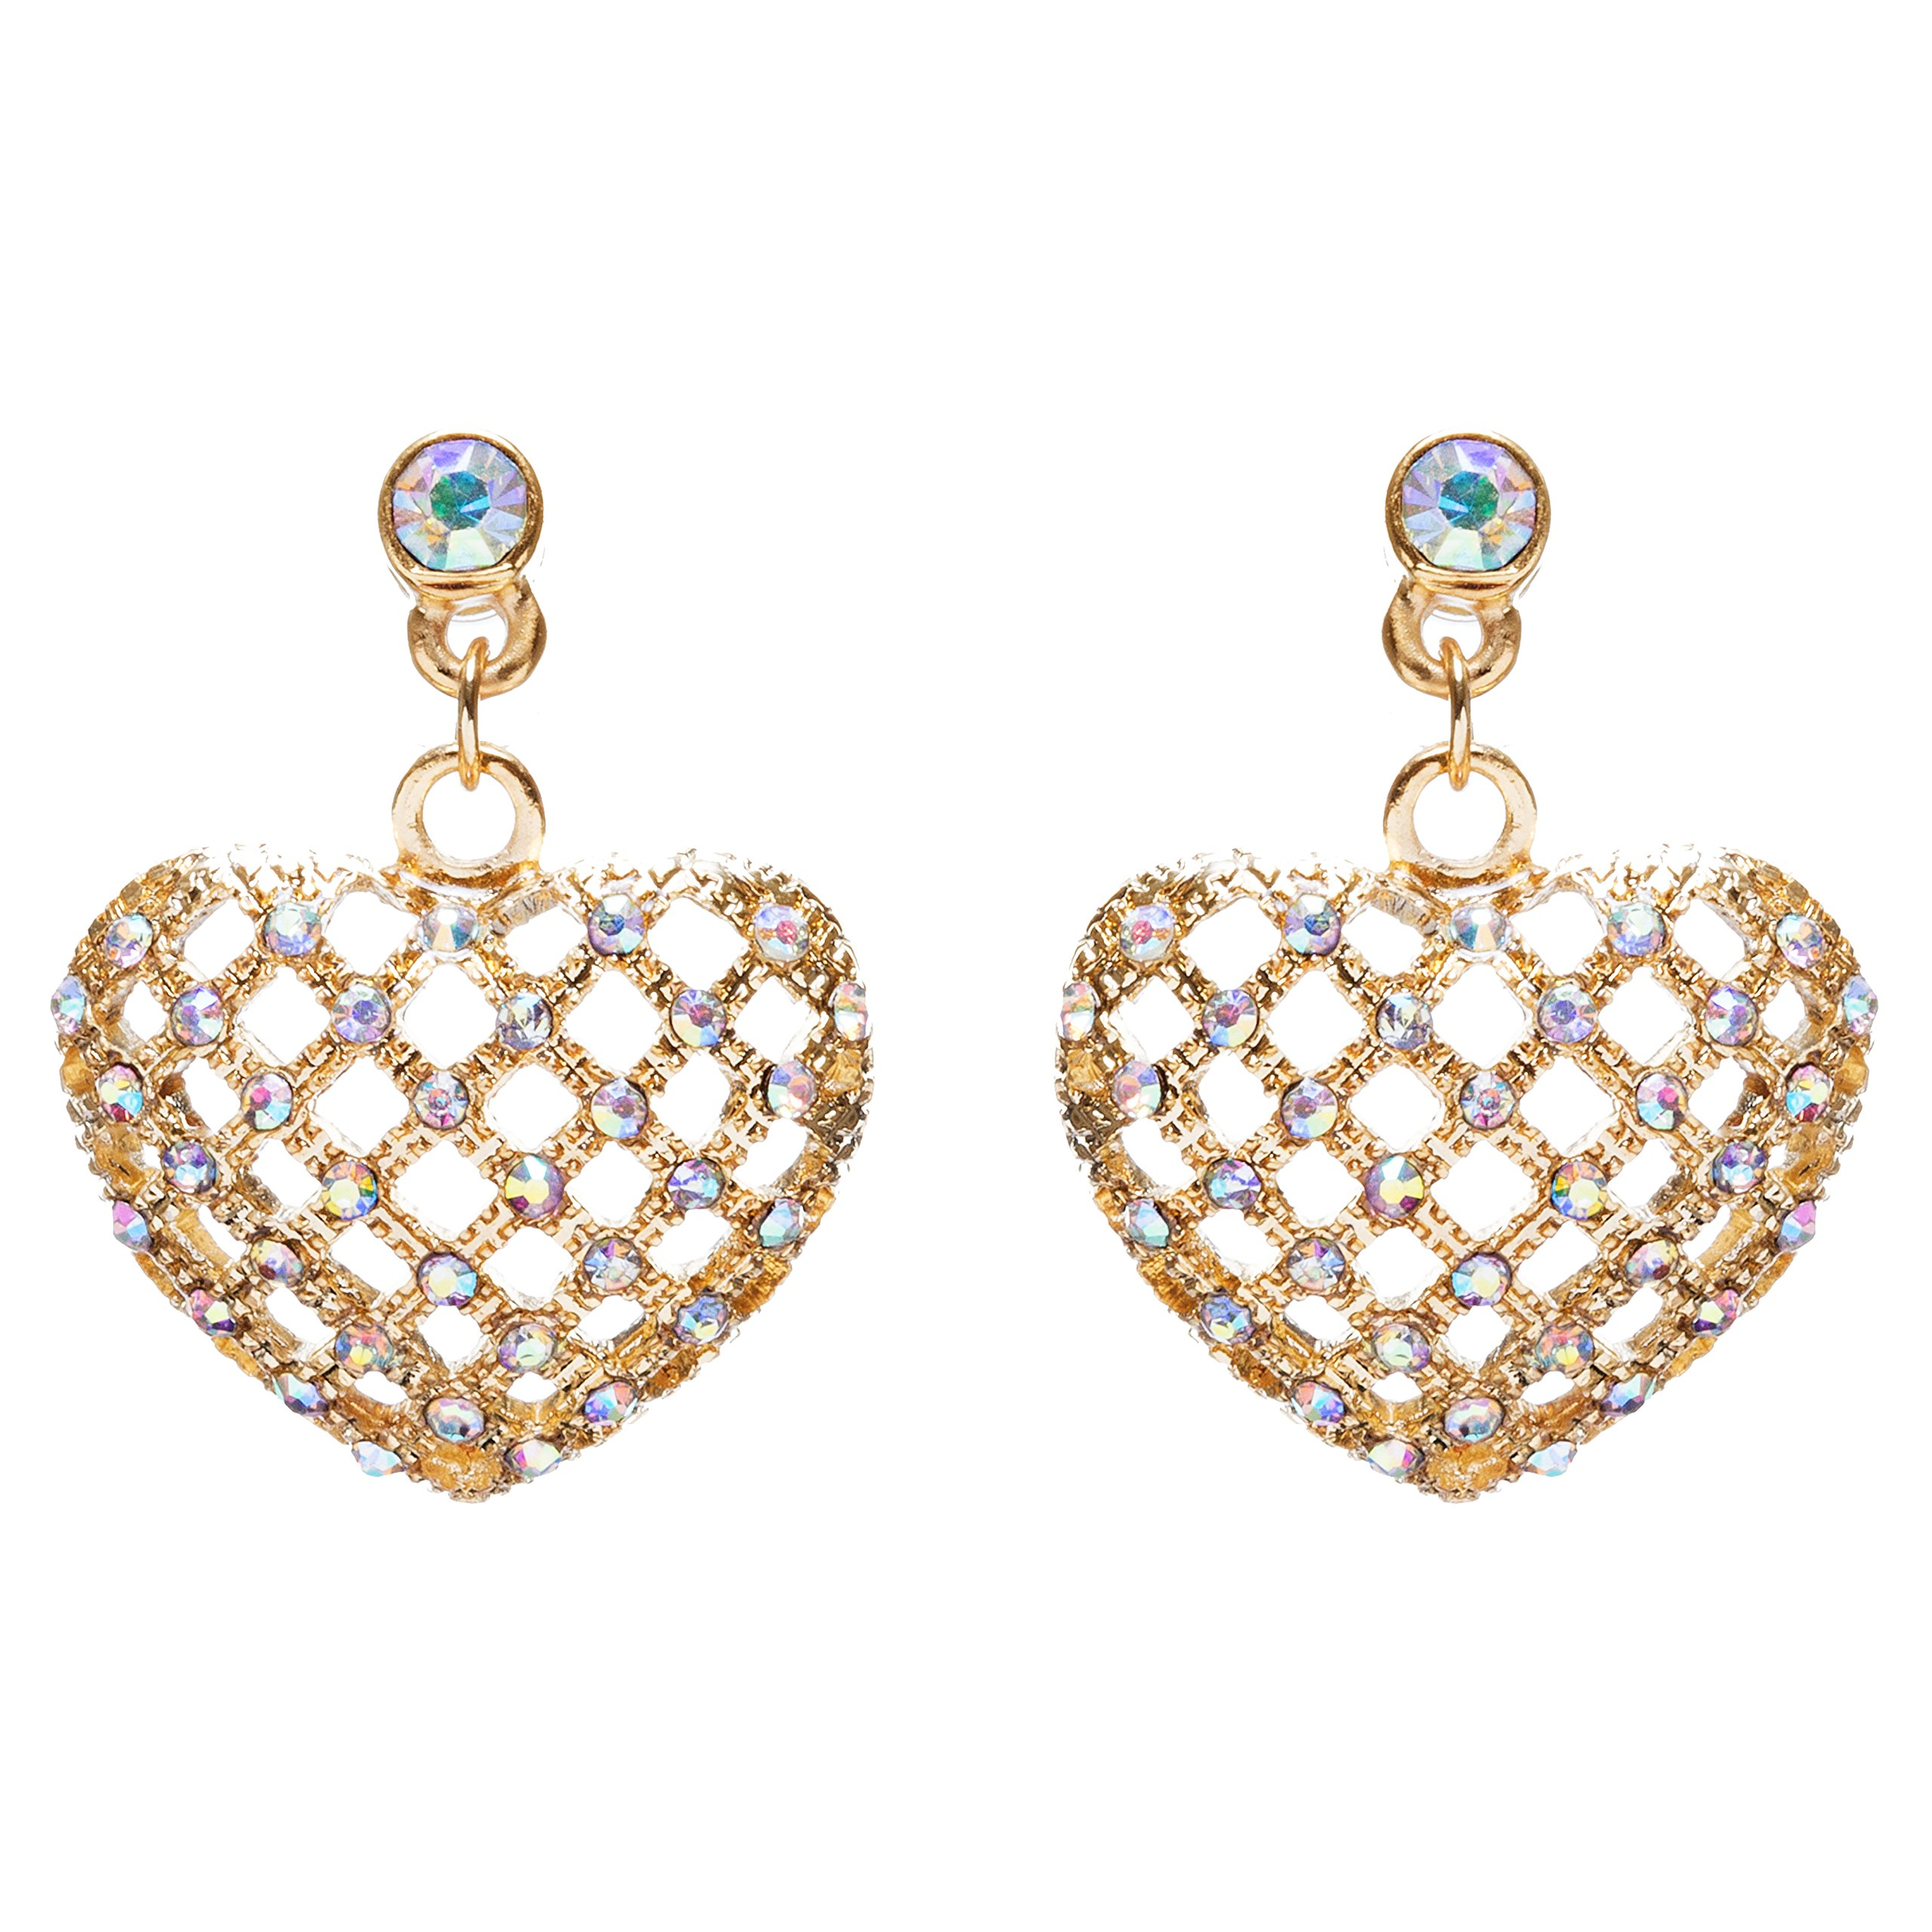 ACCESSORIESFOREVER Women Valentine's Day Jewelry Crystal Rhinestone Charming Heart Dangle Earrings E933GD